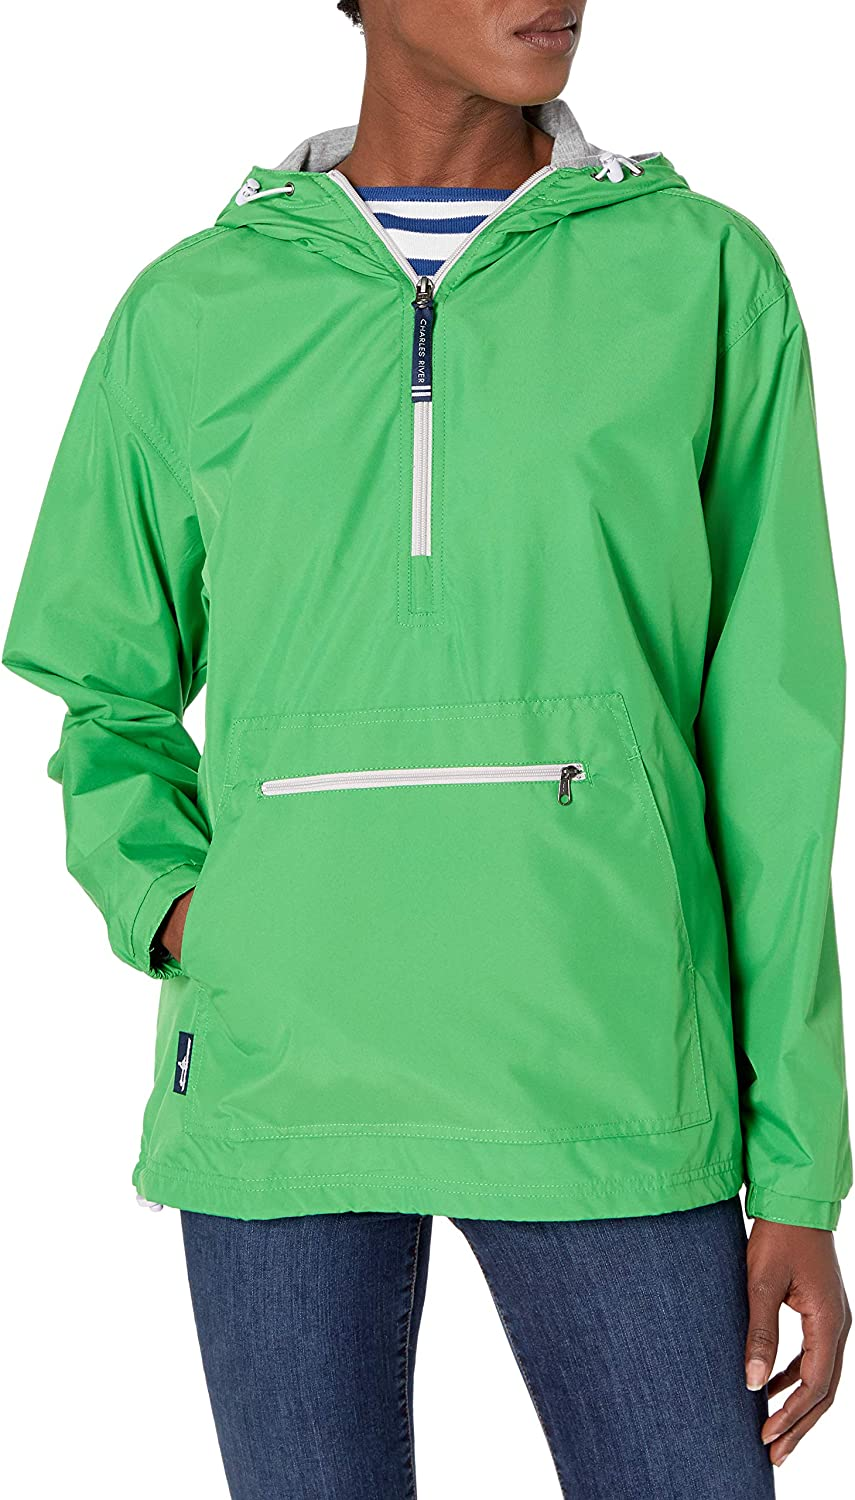 Manufacturer regenerated product Charles River shop Apparel Anorak Women's Chatham